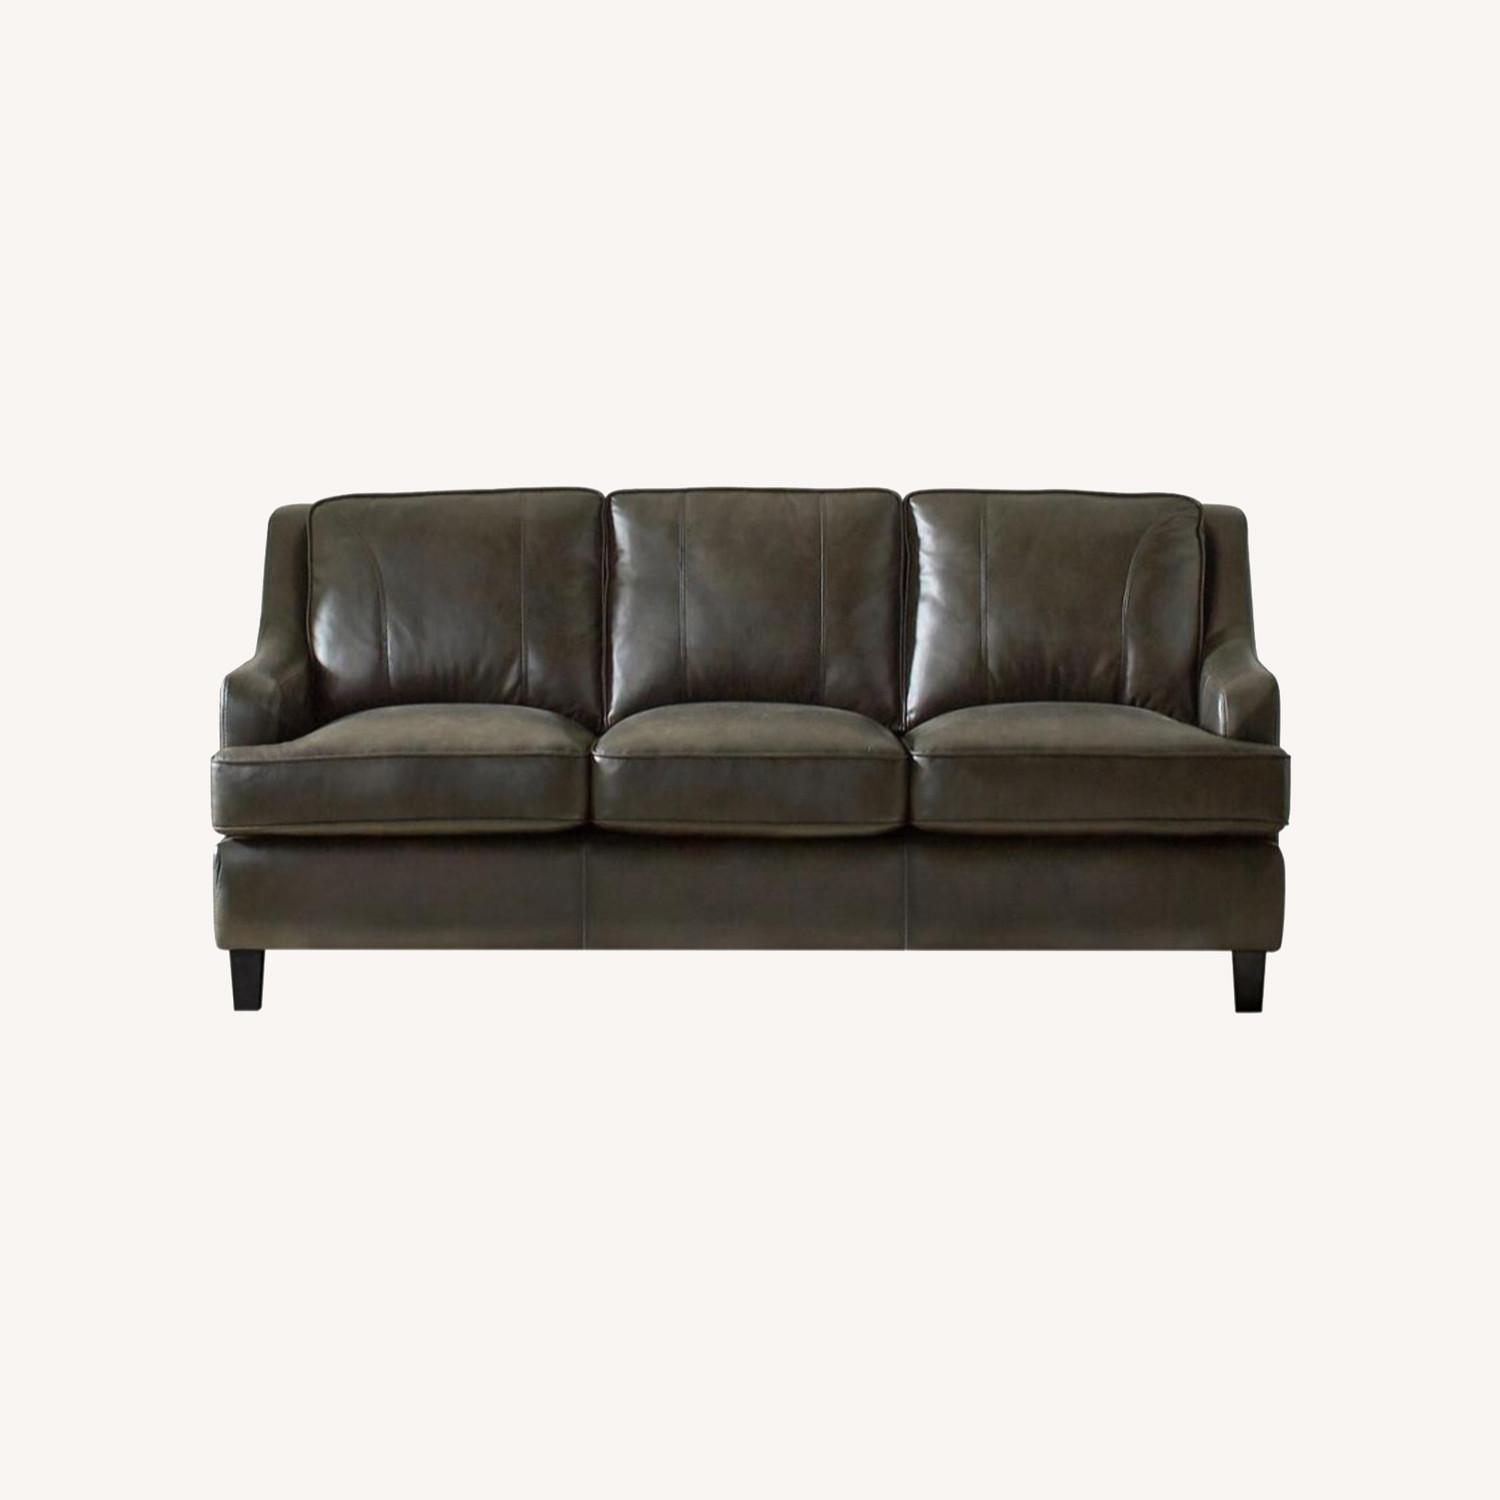 Sofa In Grey Leatherette W/ Stitching Details - image-4